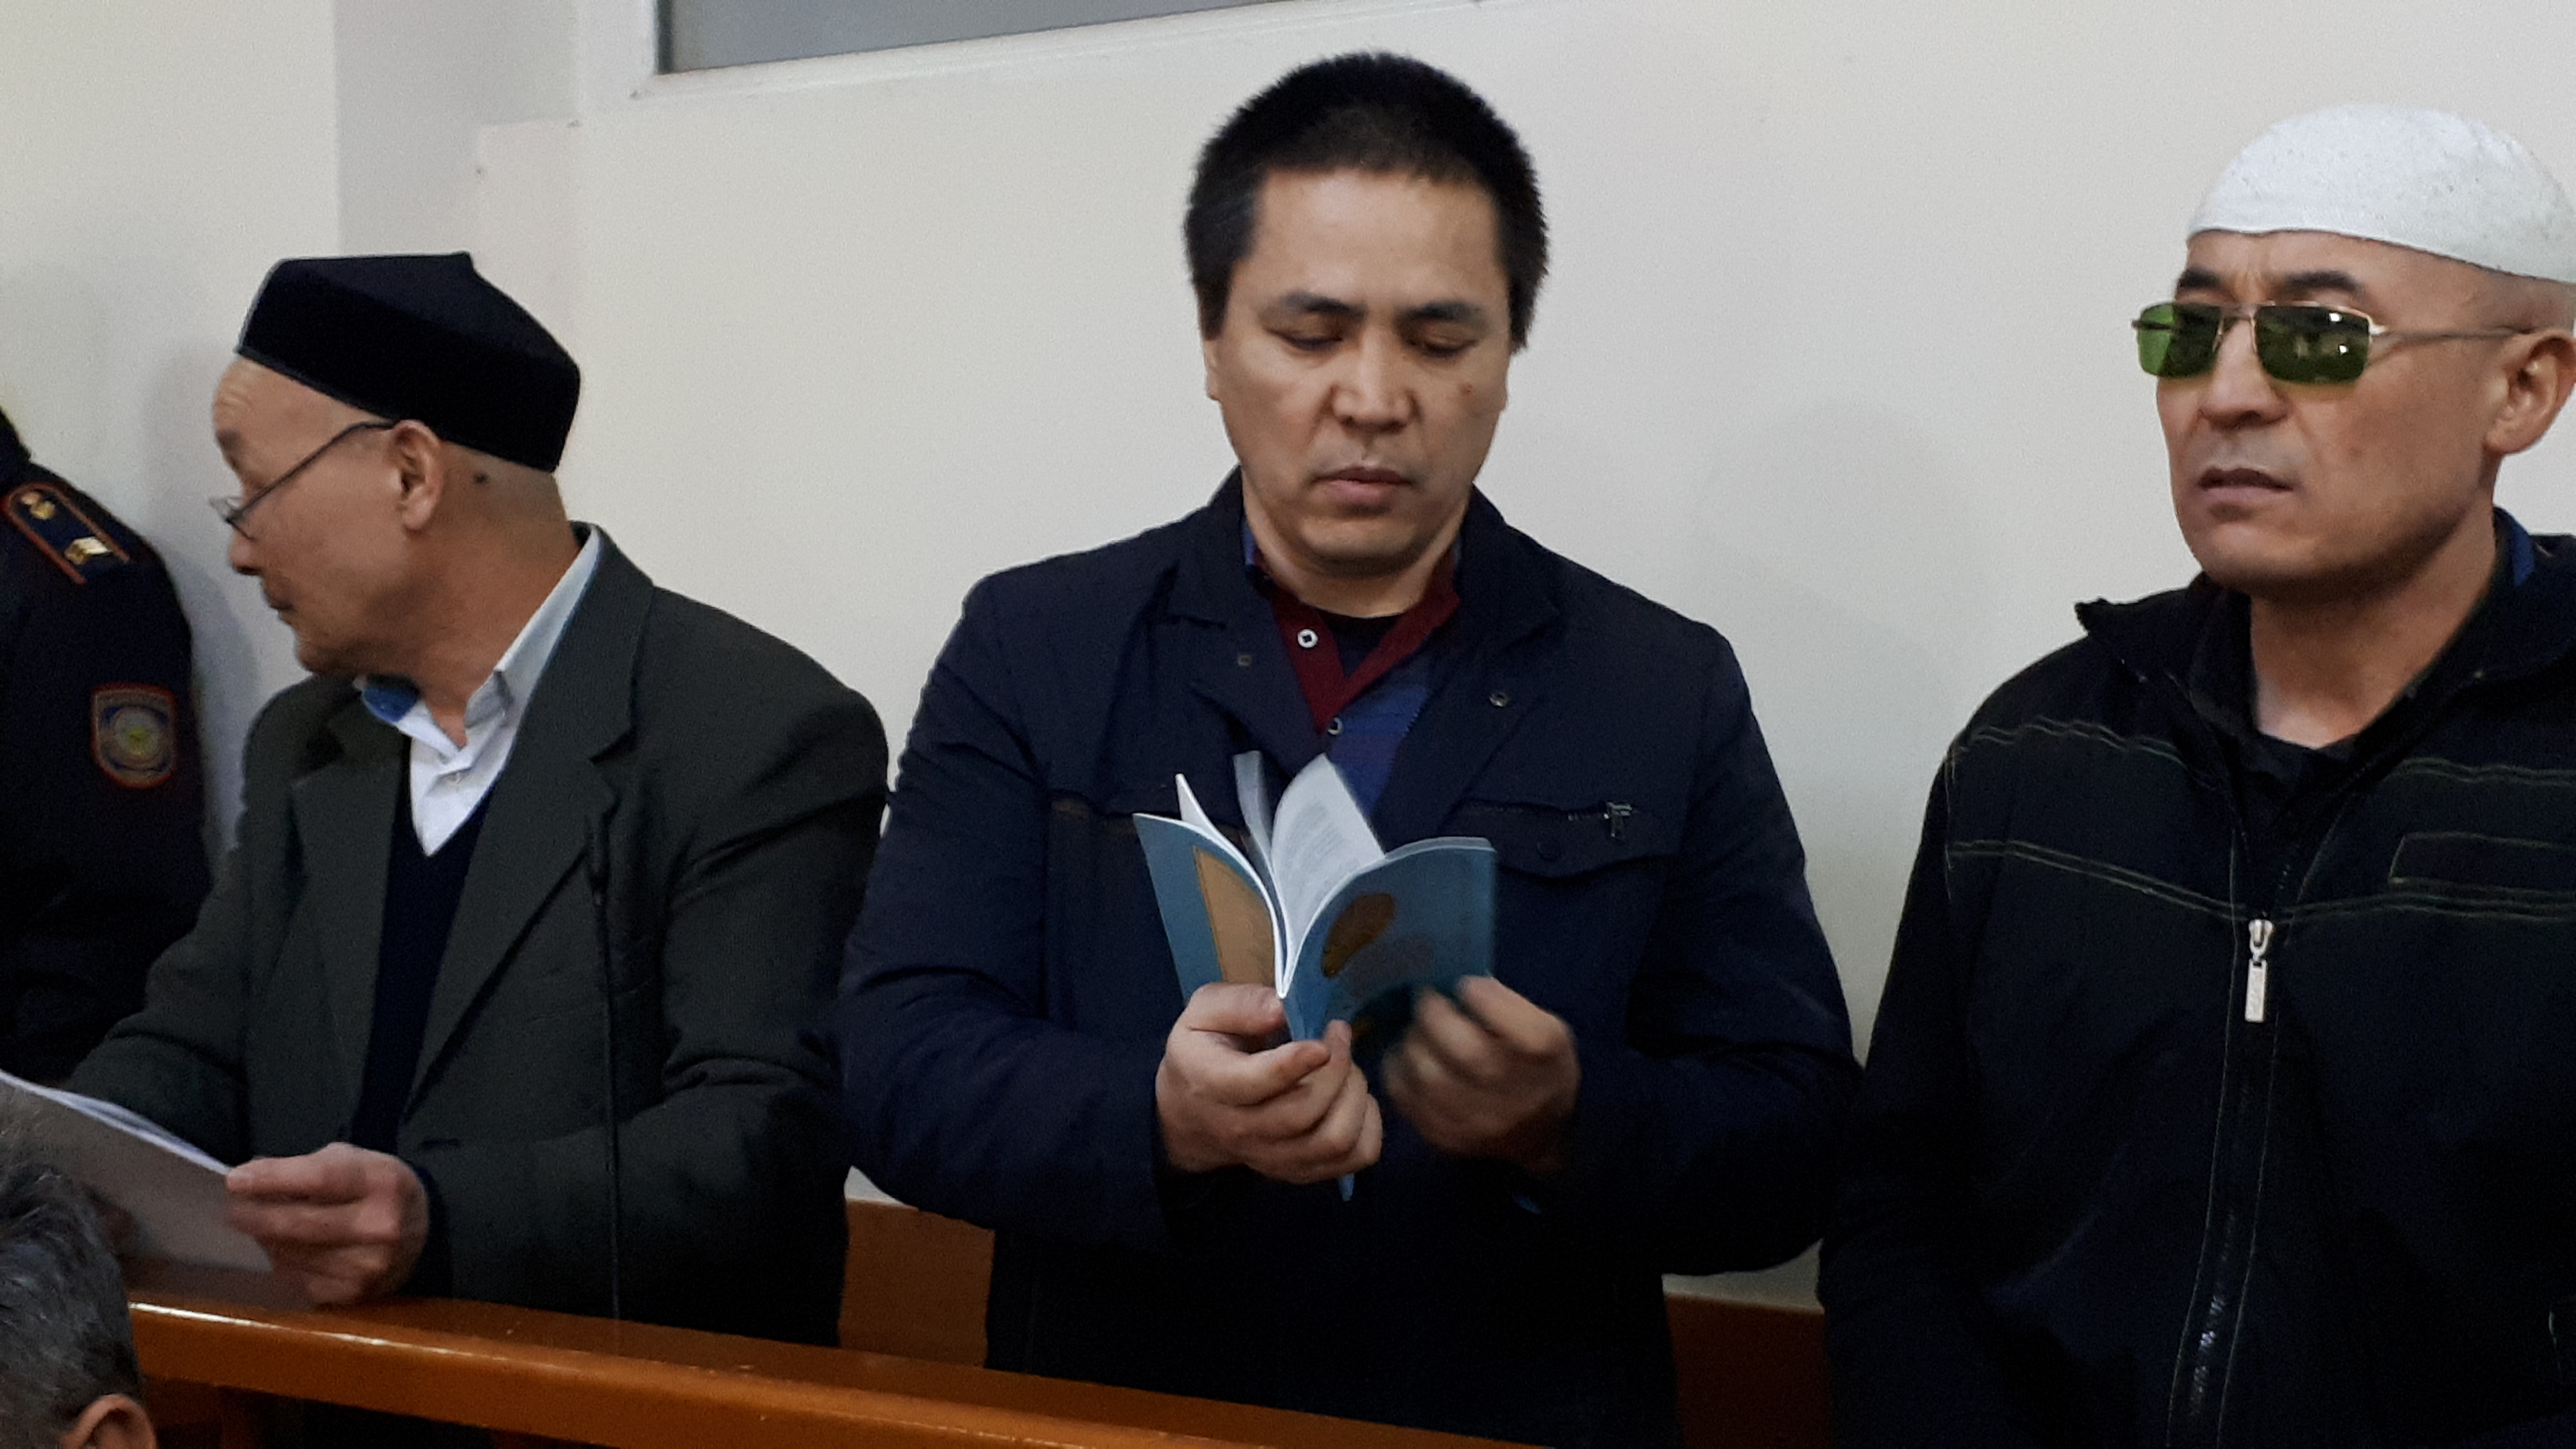 Left to right: Abishev, Zhumagulov and Omyrov at the Almaty court. (Photo: Joanna Lillis)